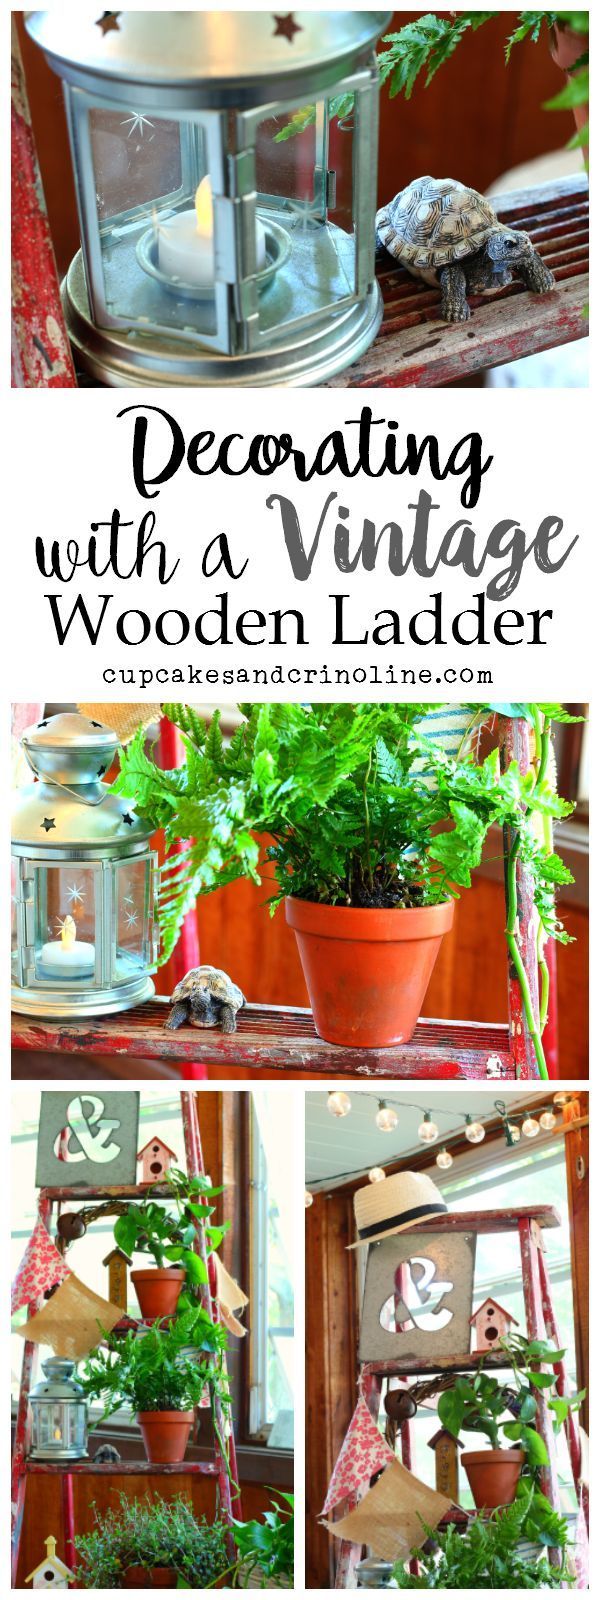 Decorating with a Vintage wooden ladder - more photos and ideas at cupcakesandcrinol...